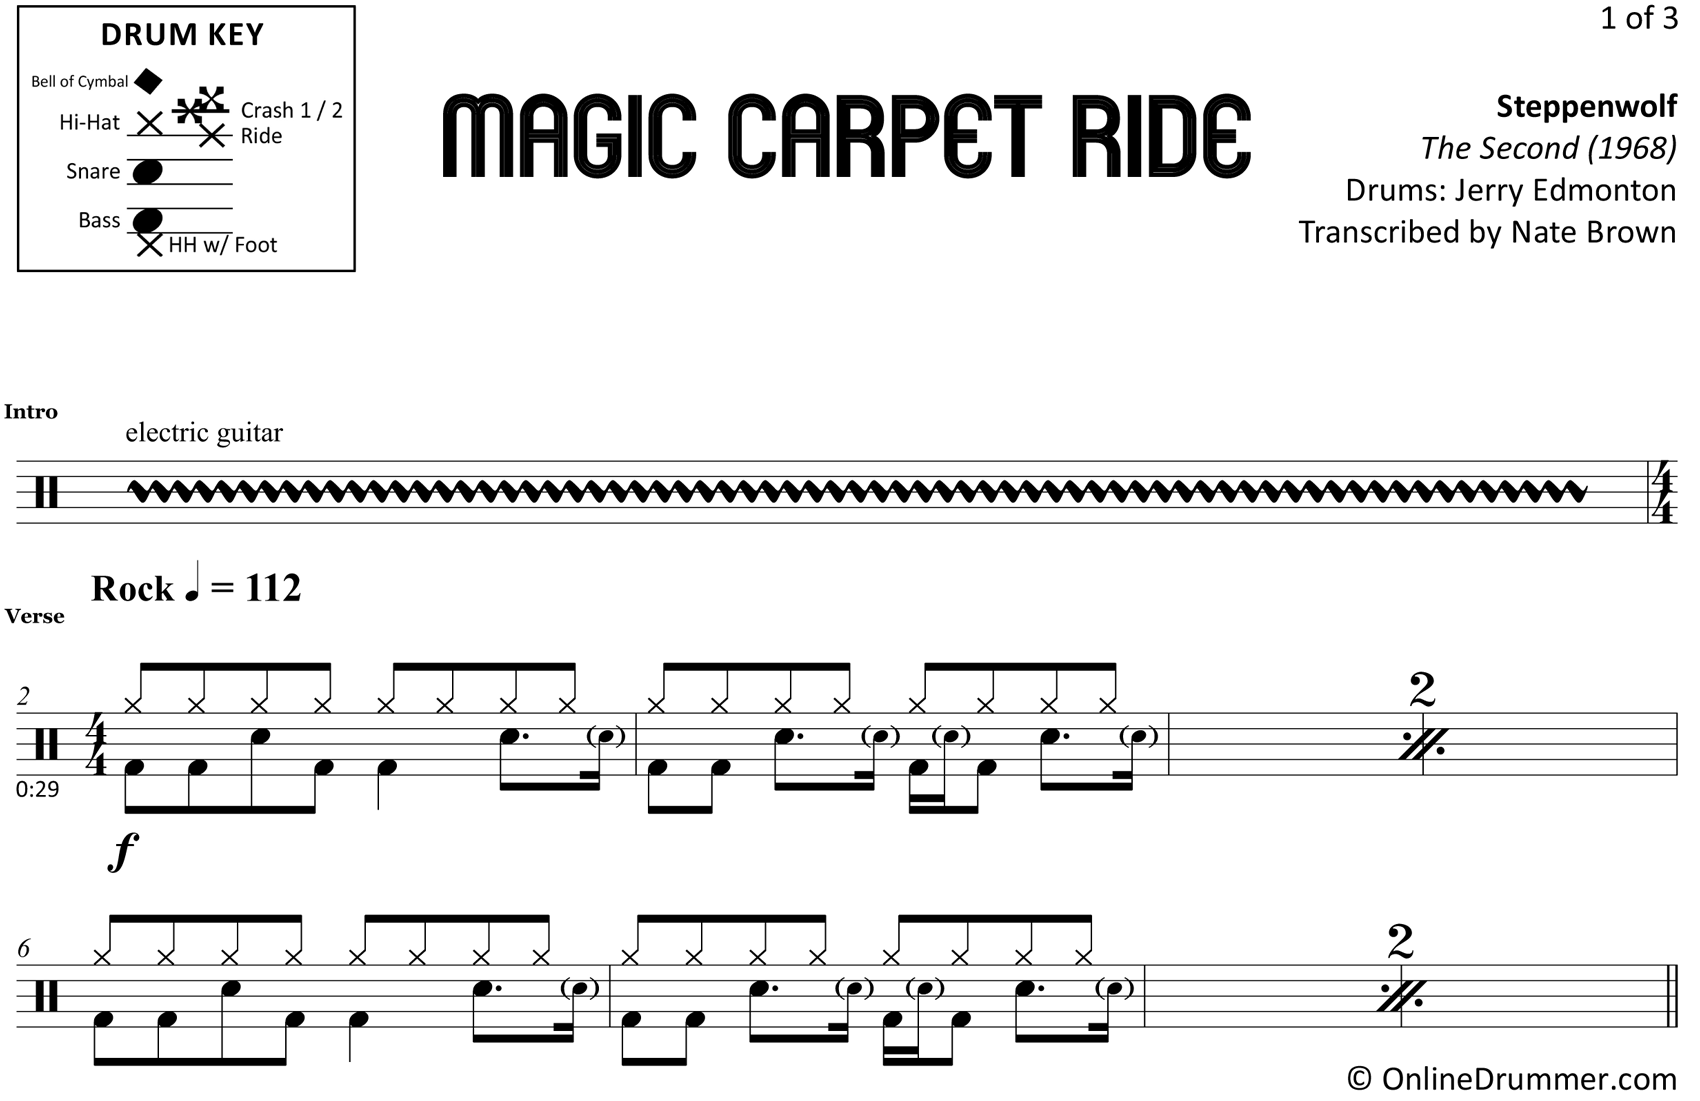 Magic Carpet Ride - Steppenwolf - Drum Sheet Music